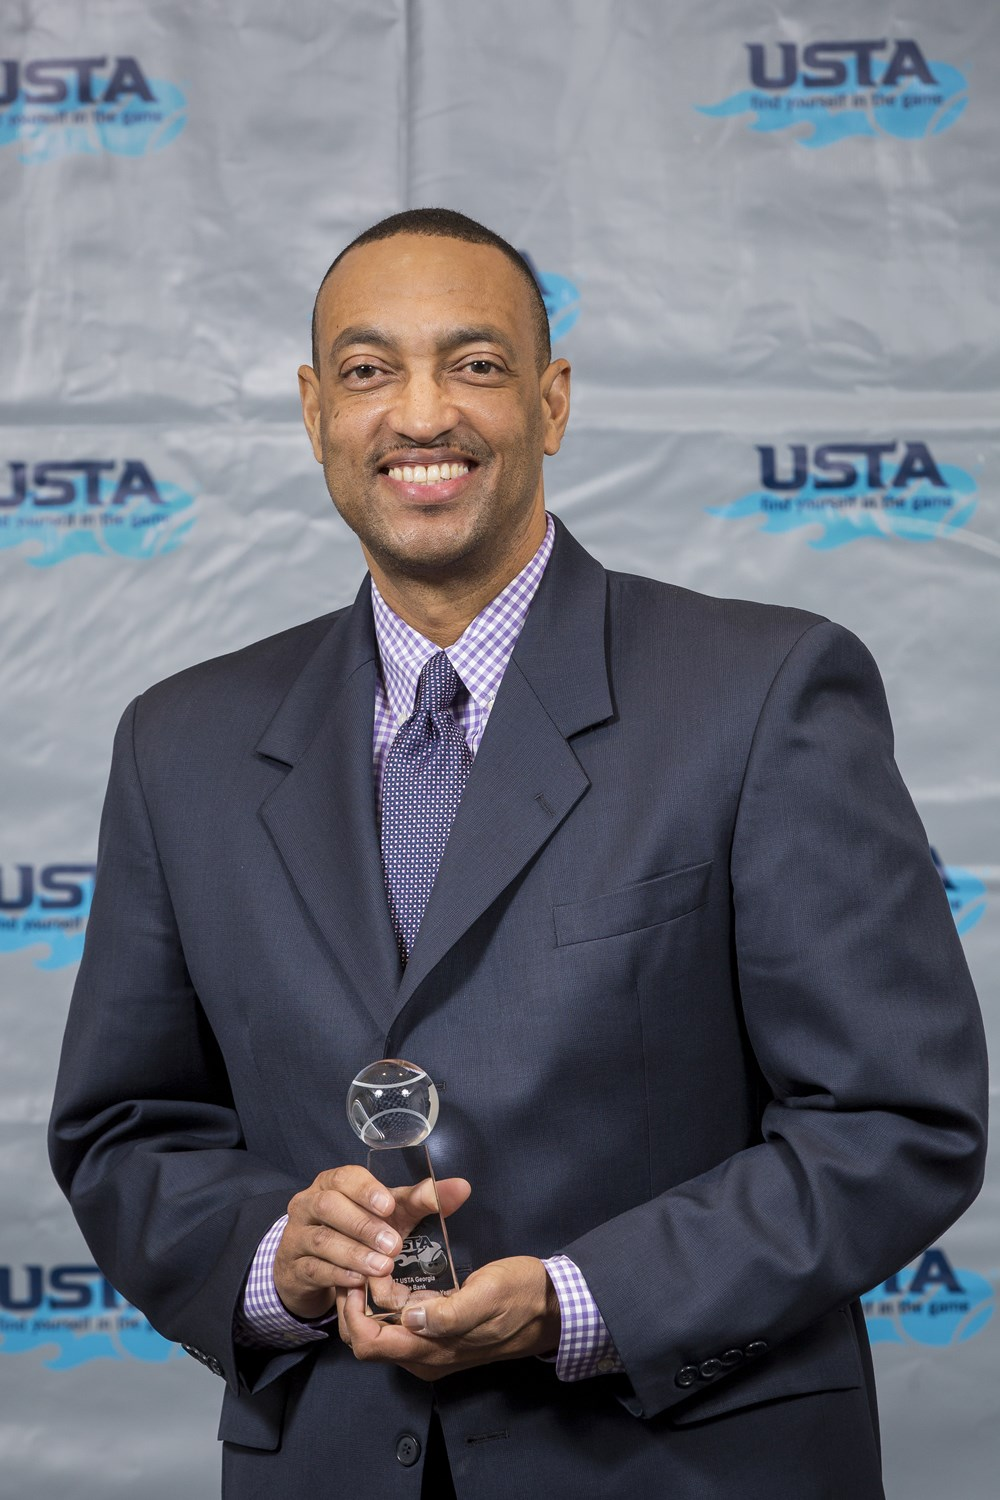 Lamar_Scott_-_2017_USTA_Georgia_Tennis_Professional_of_the_Year